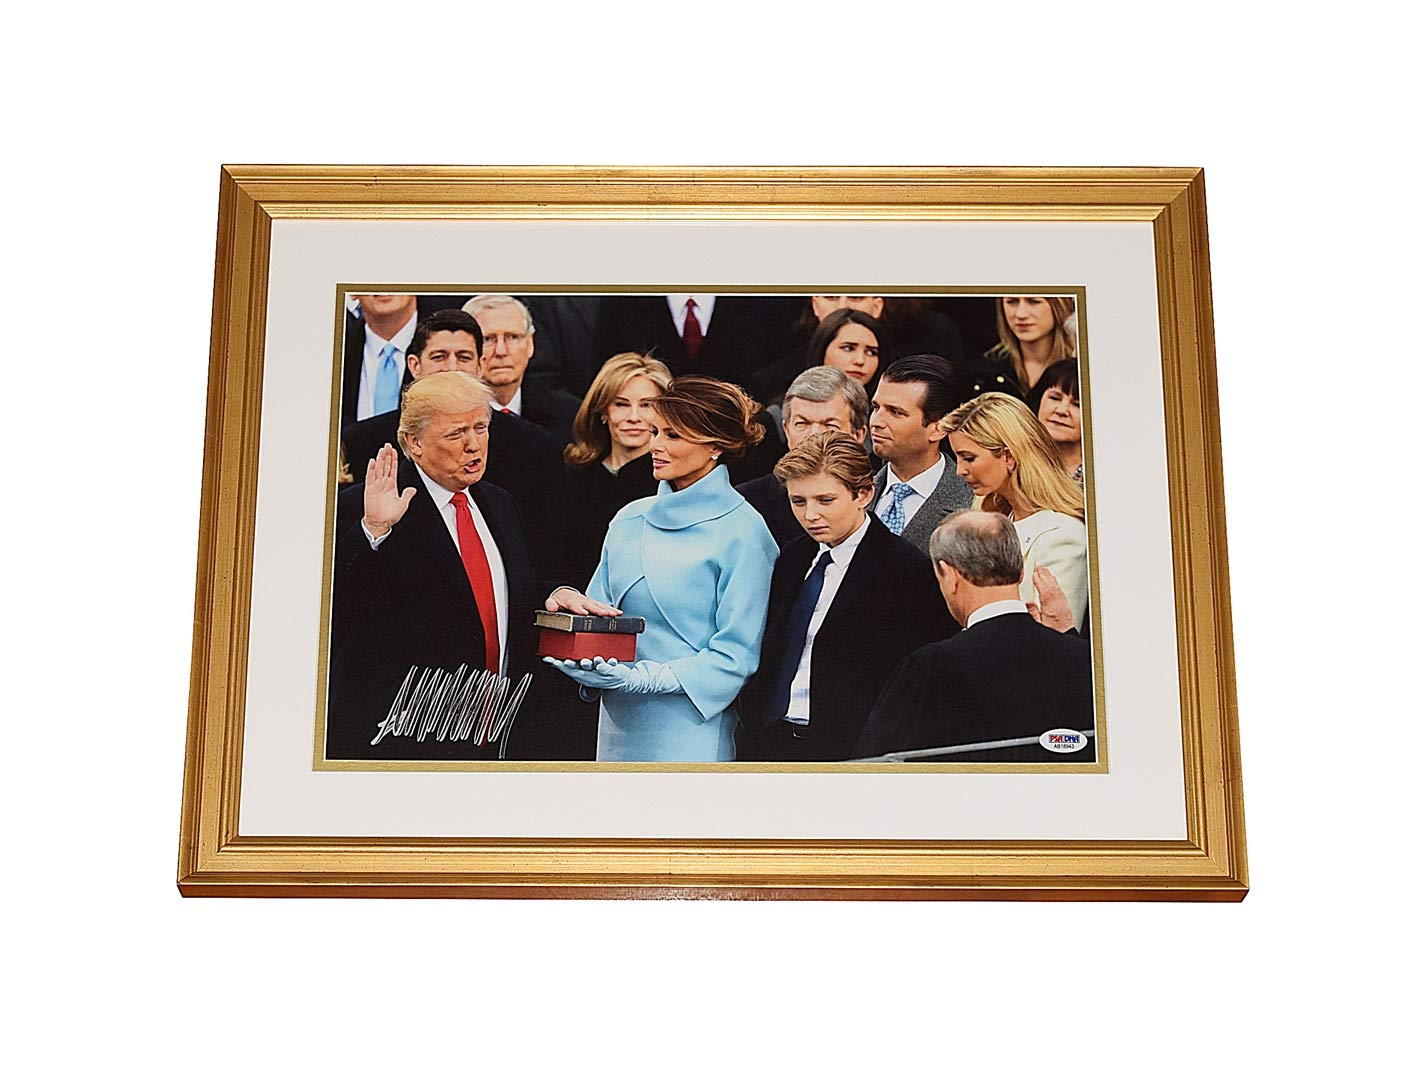 AUTOGRAPHED Donald J. Trump 2016 PRESIDENTIAL INAUGURATION (Taking The Oath Of Office) January 20th, 2016 Signed 10.5X16 Inch Picture Professional 16.5X22 Inch Gold Framed Photo With PSA/DNA COA